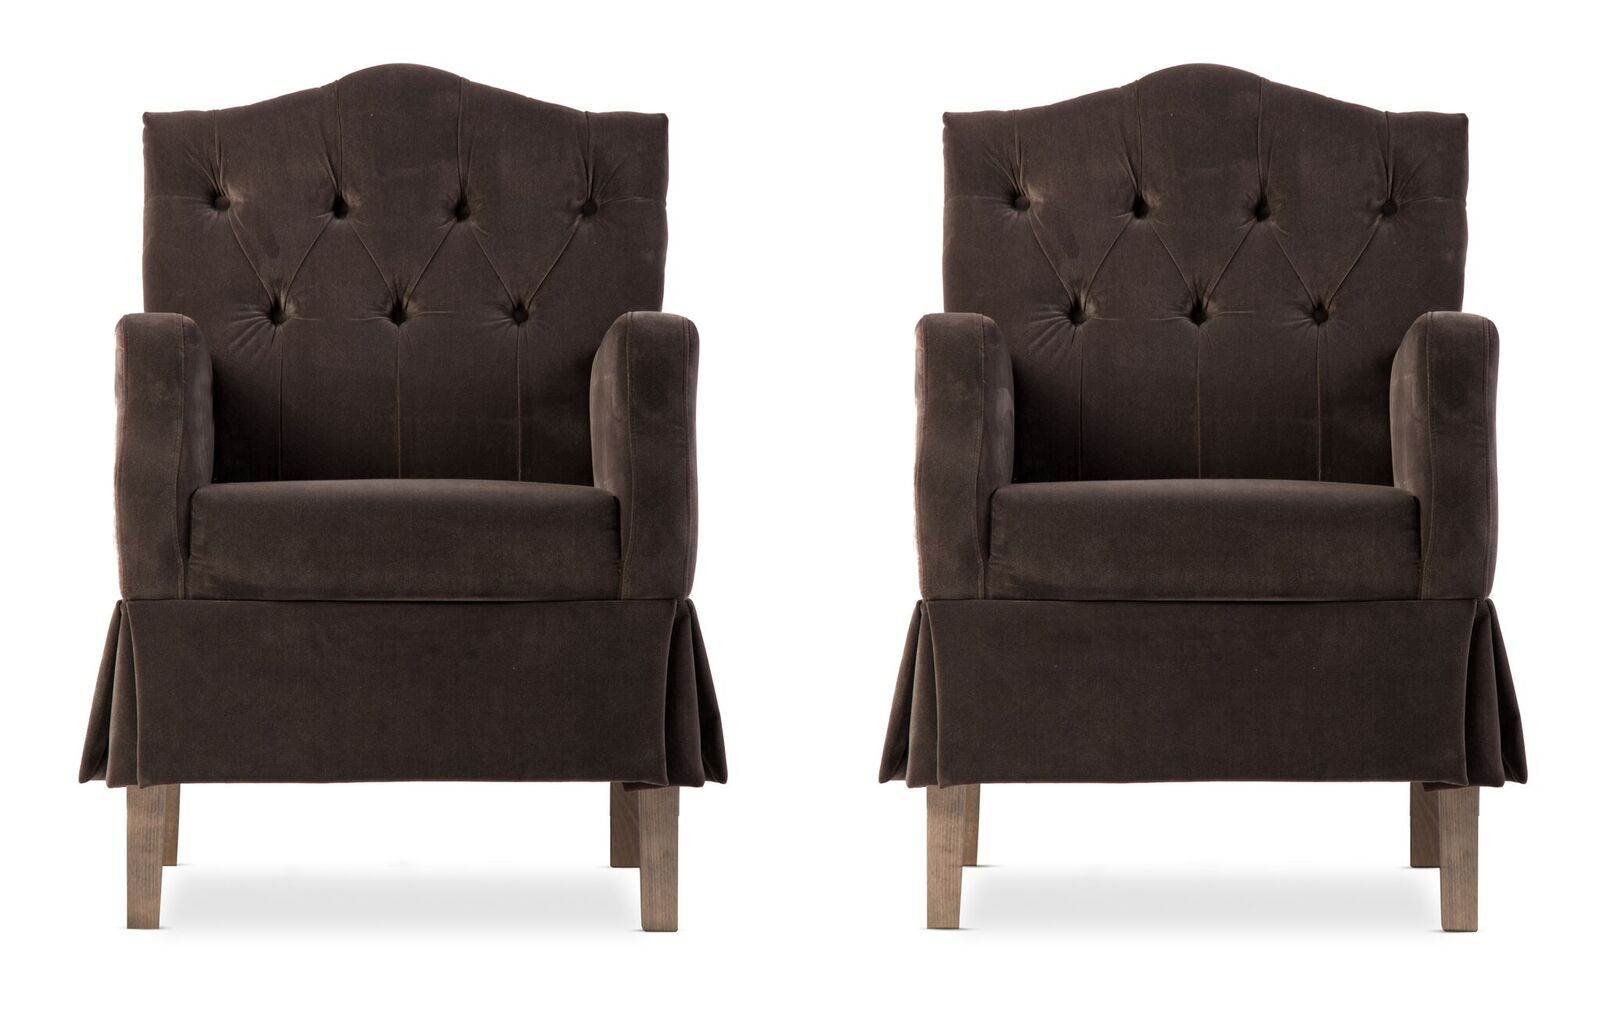 Olav Home fauteuil Diana 't Maaseiker Woonhuys